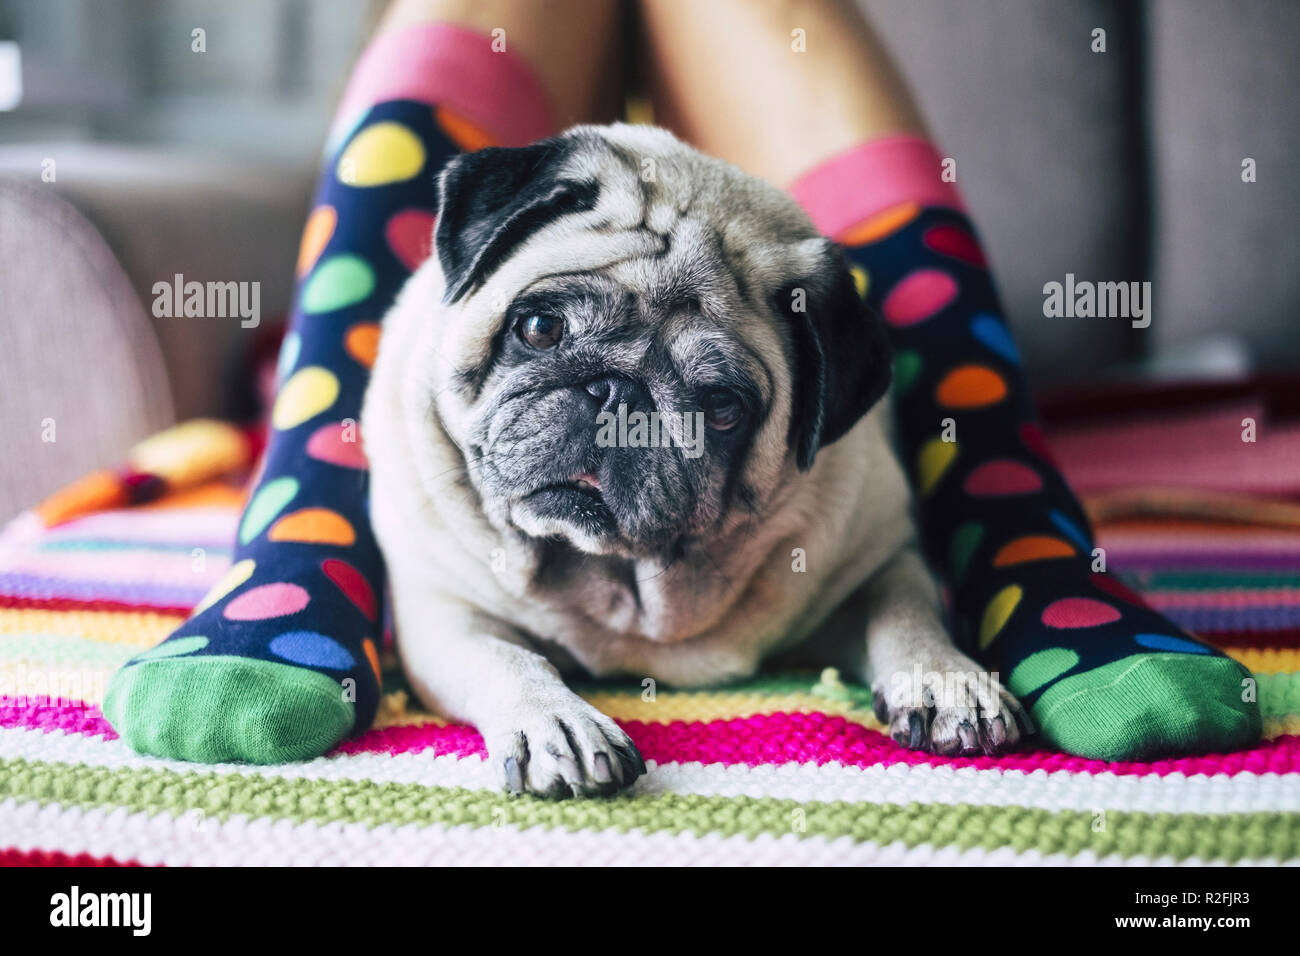 funny concept of friendship forever with happy young girl with crazy colored socks and creamy pug dog in the middle of her legs laying and looking curiously at the camera. protect and friends concept at home - Stock Image